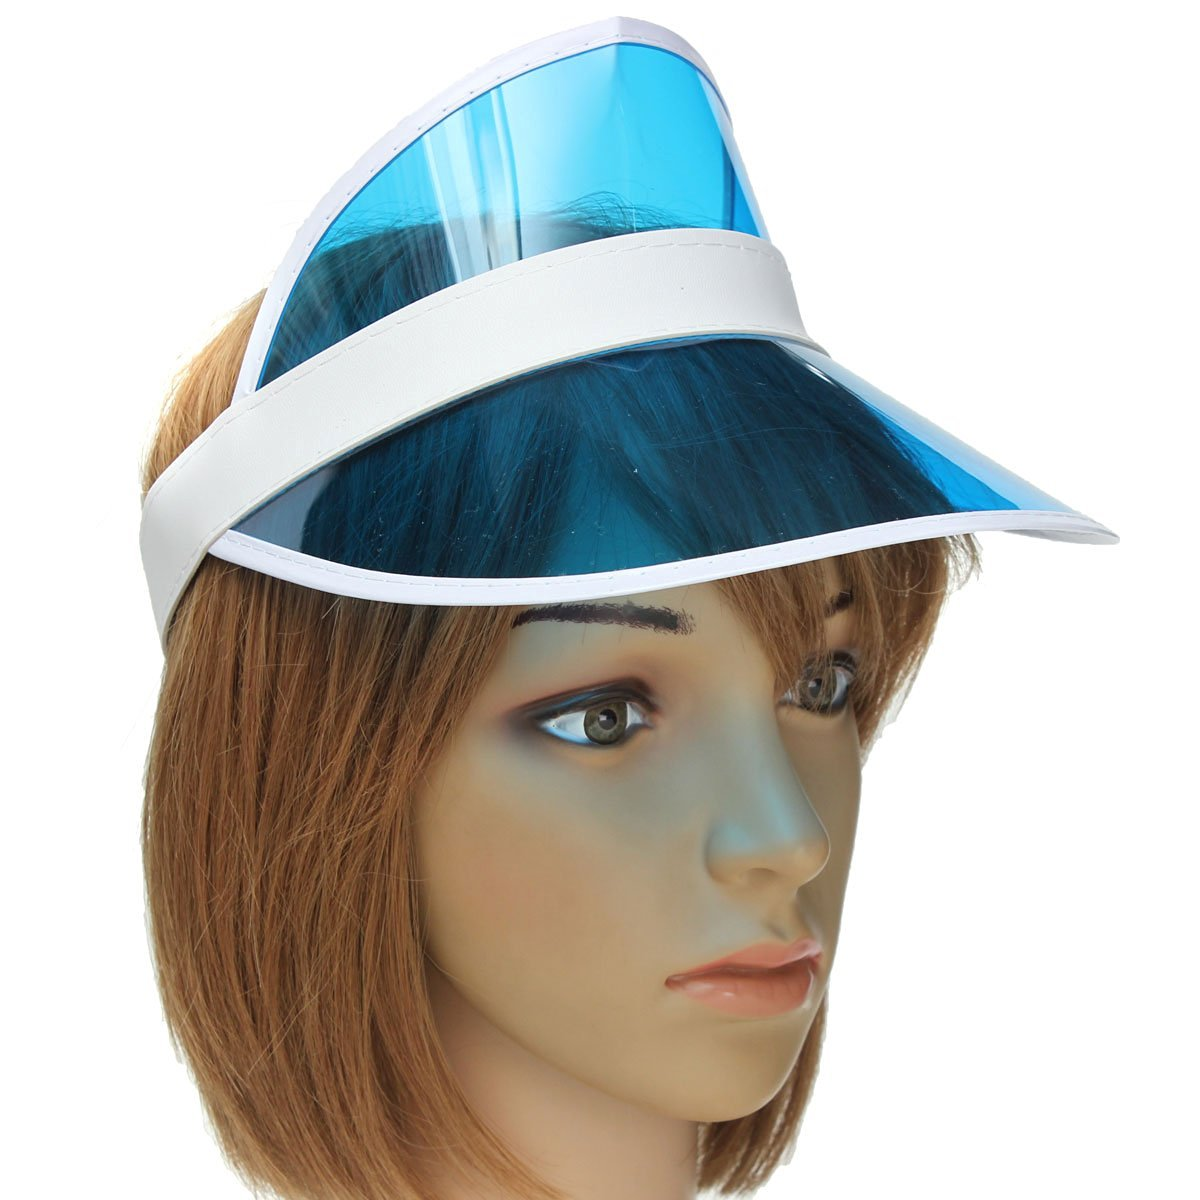 7ad11a40214 Get Quotations · Sun Visor Hat